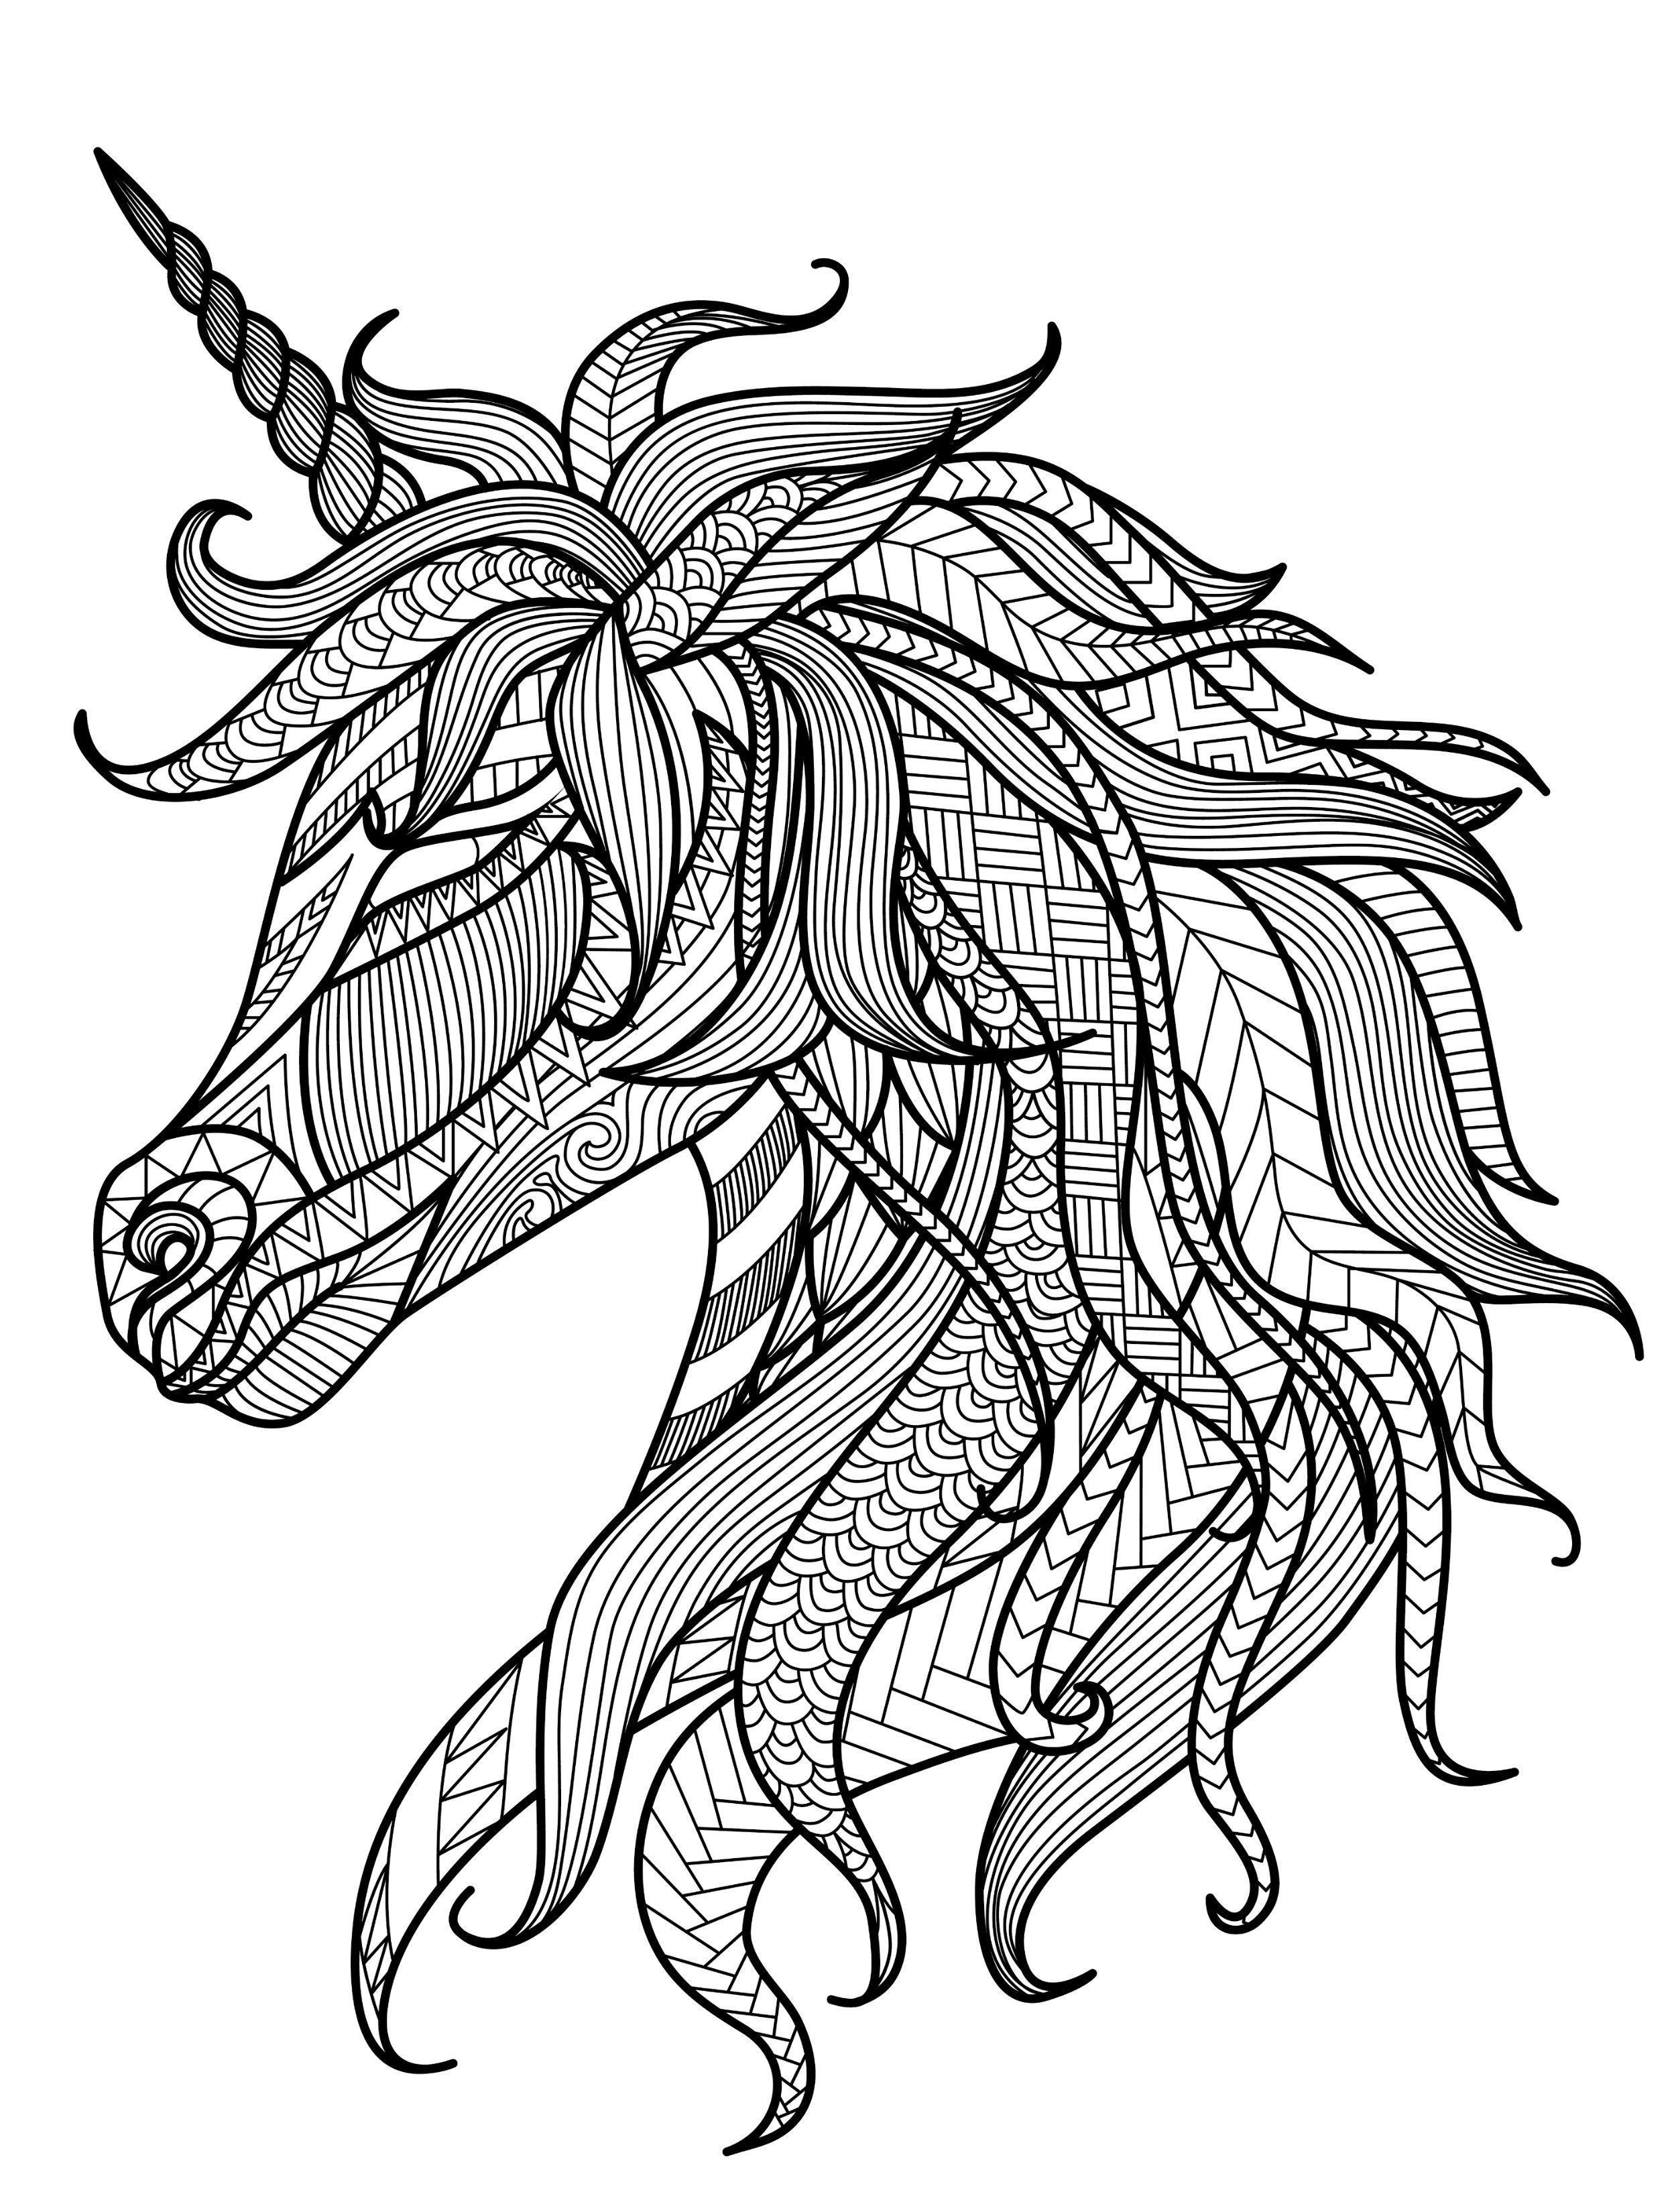 Free Downloadable Coloring Pages Weird Free Downloadable Coloring ... | 3300x2500